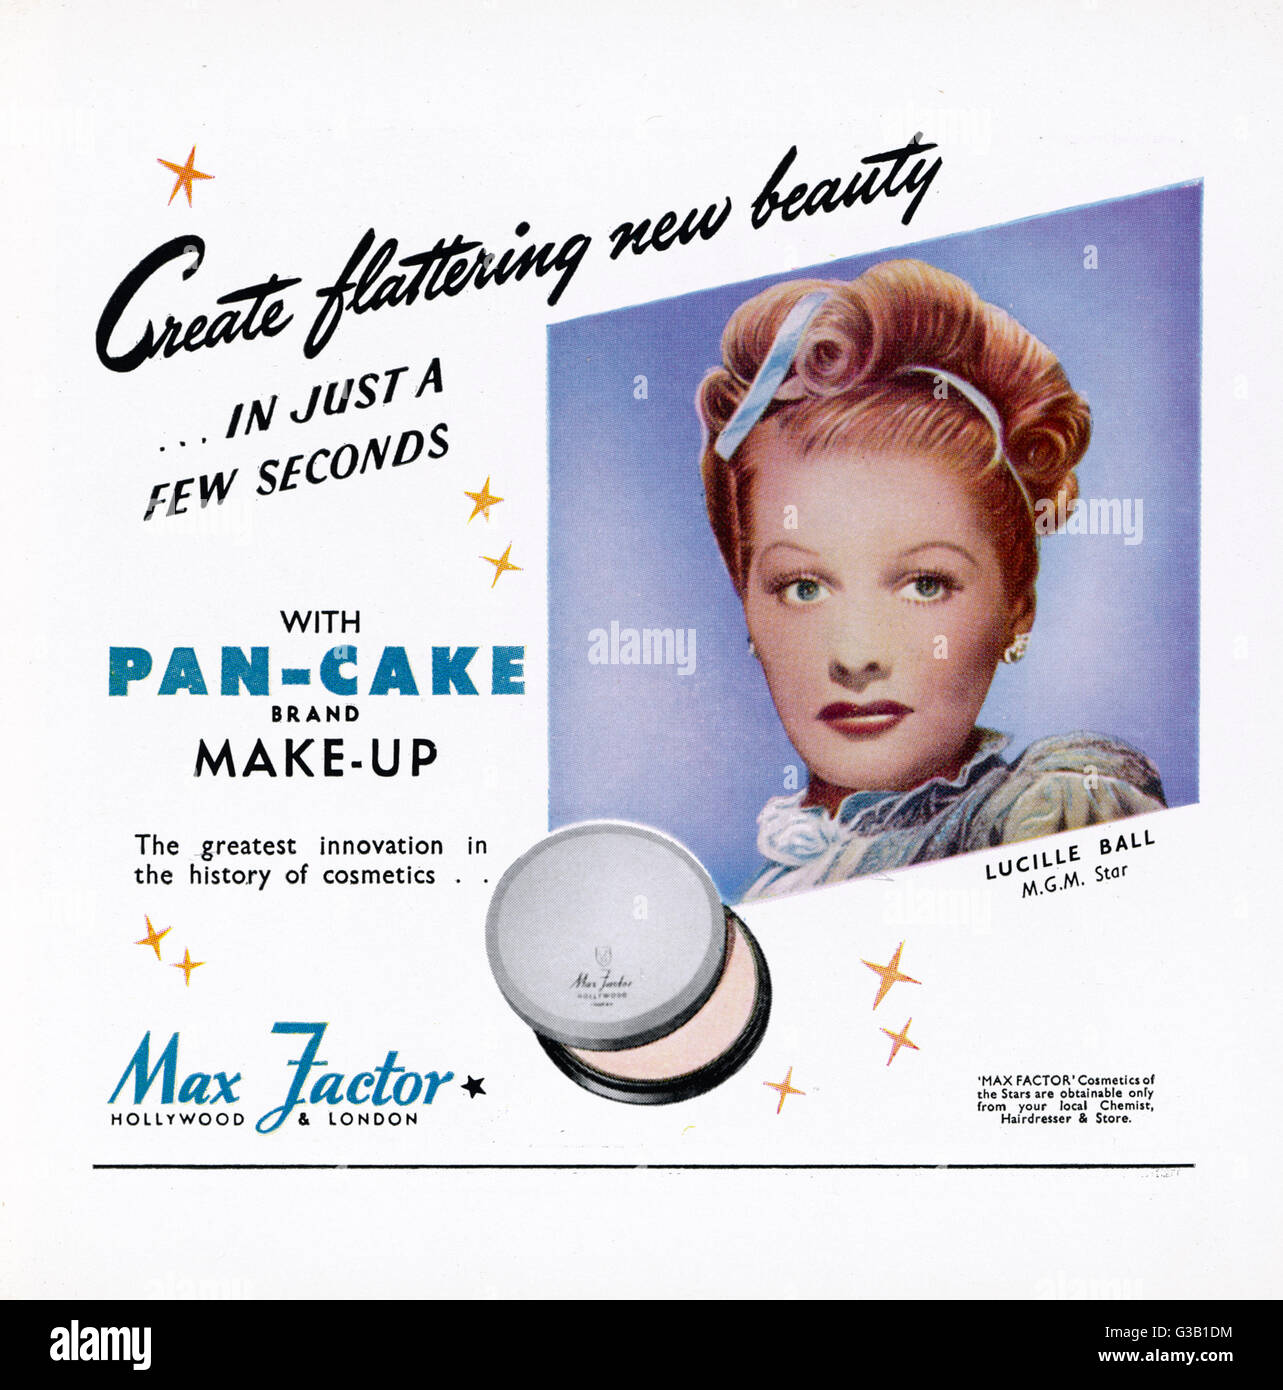 Max Factor Pan-Cake makeup - as used by Lucille Ball       Date: 1946 - Stock Image